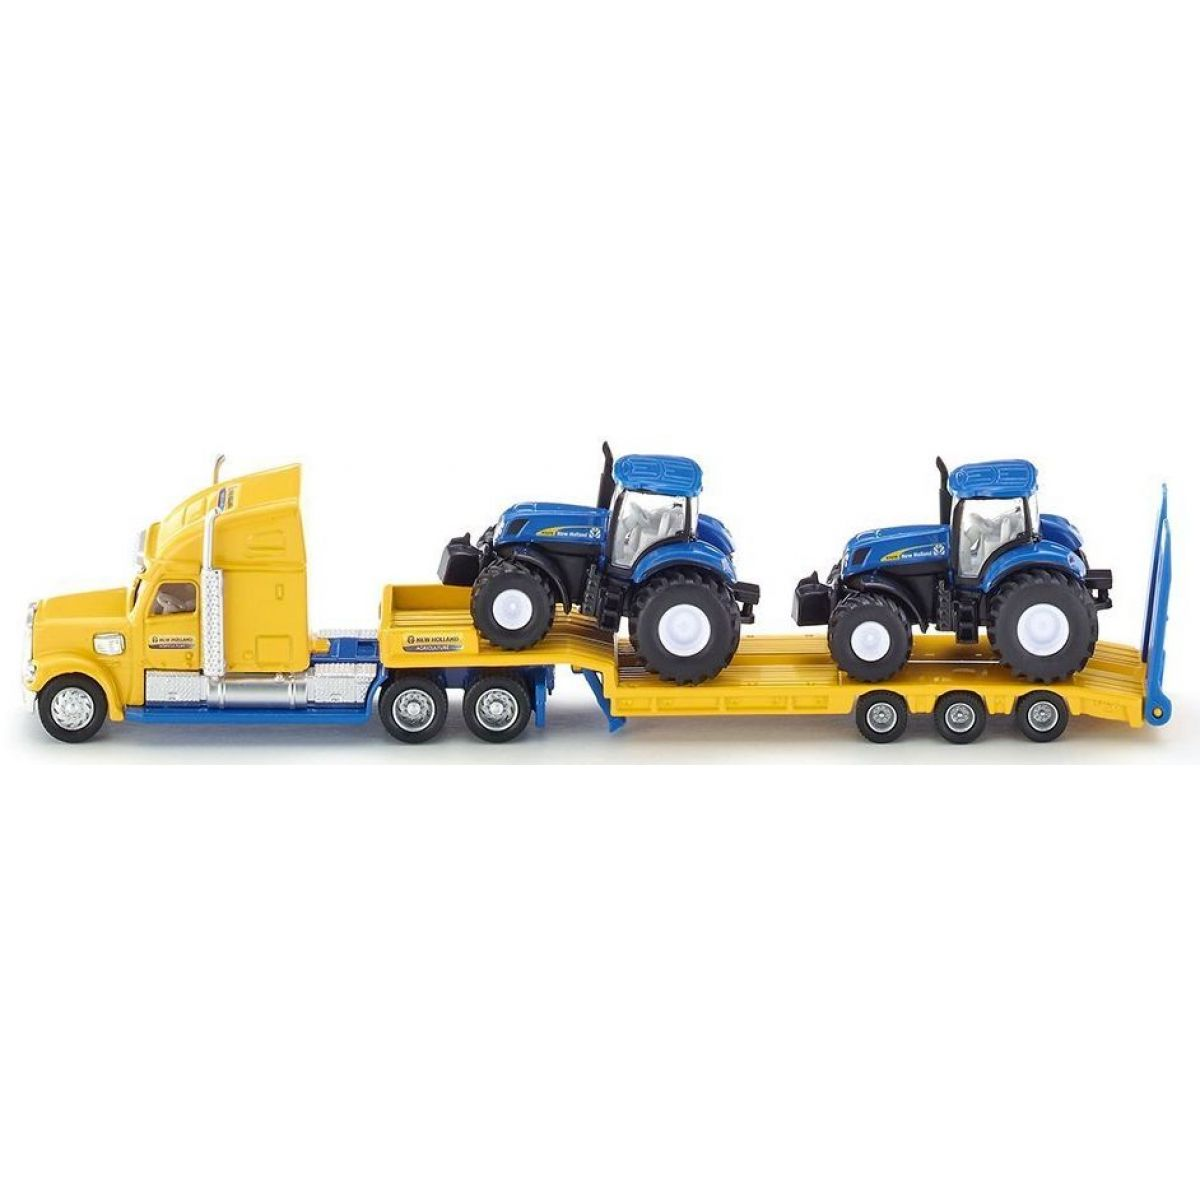 Siku Super Tahač s vlekem a 2 traktory New Holland 1:87